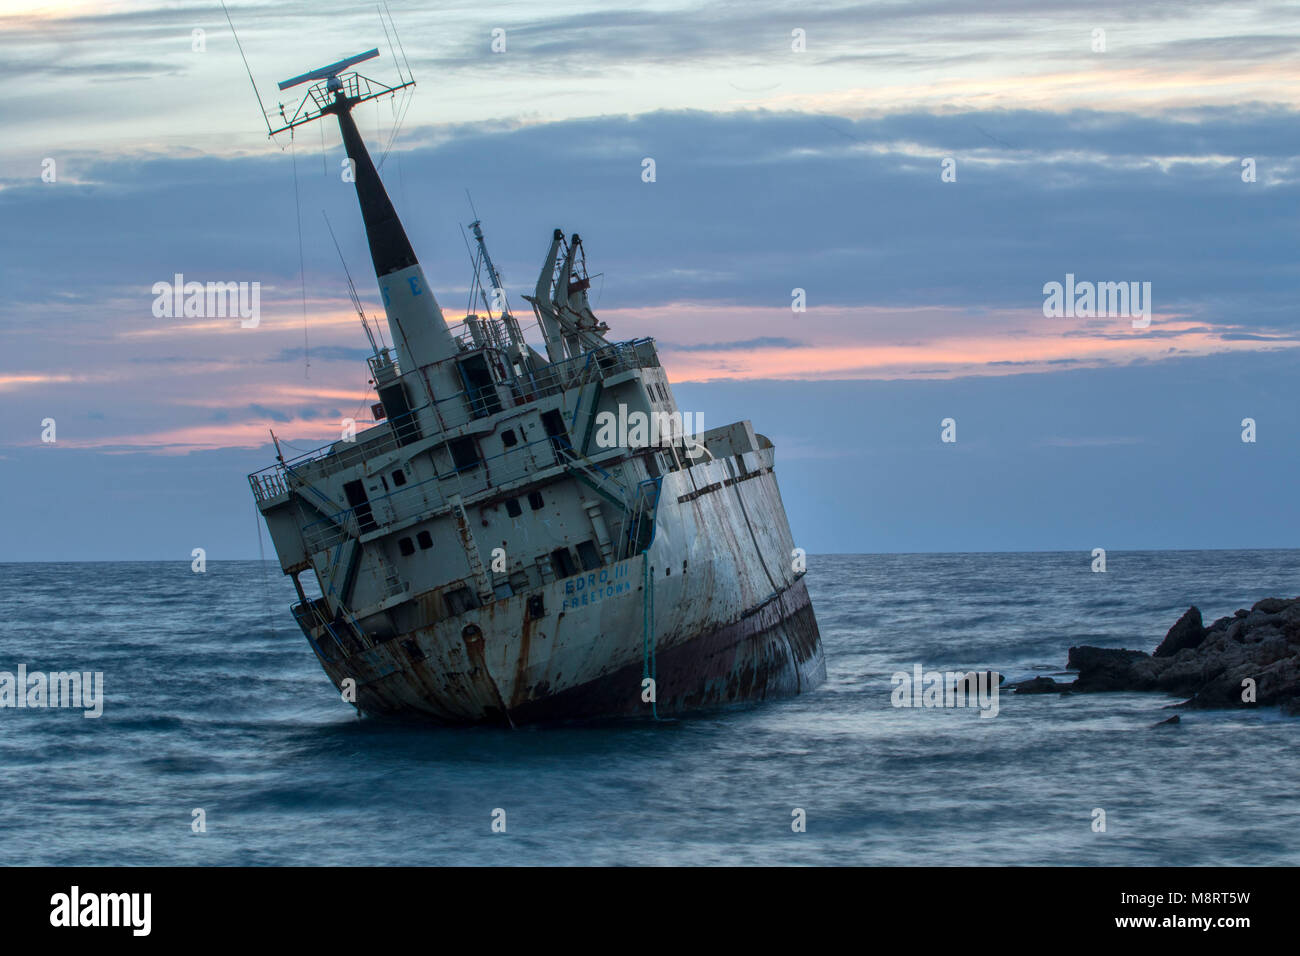 The Edro 3 shipwreck off the coast of Pegeia at sunset, Paphos district, Cyprus, Mediterranean - Stock Image